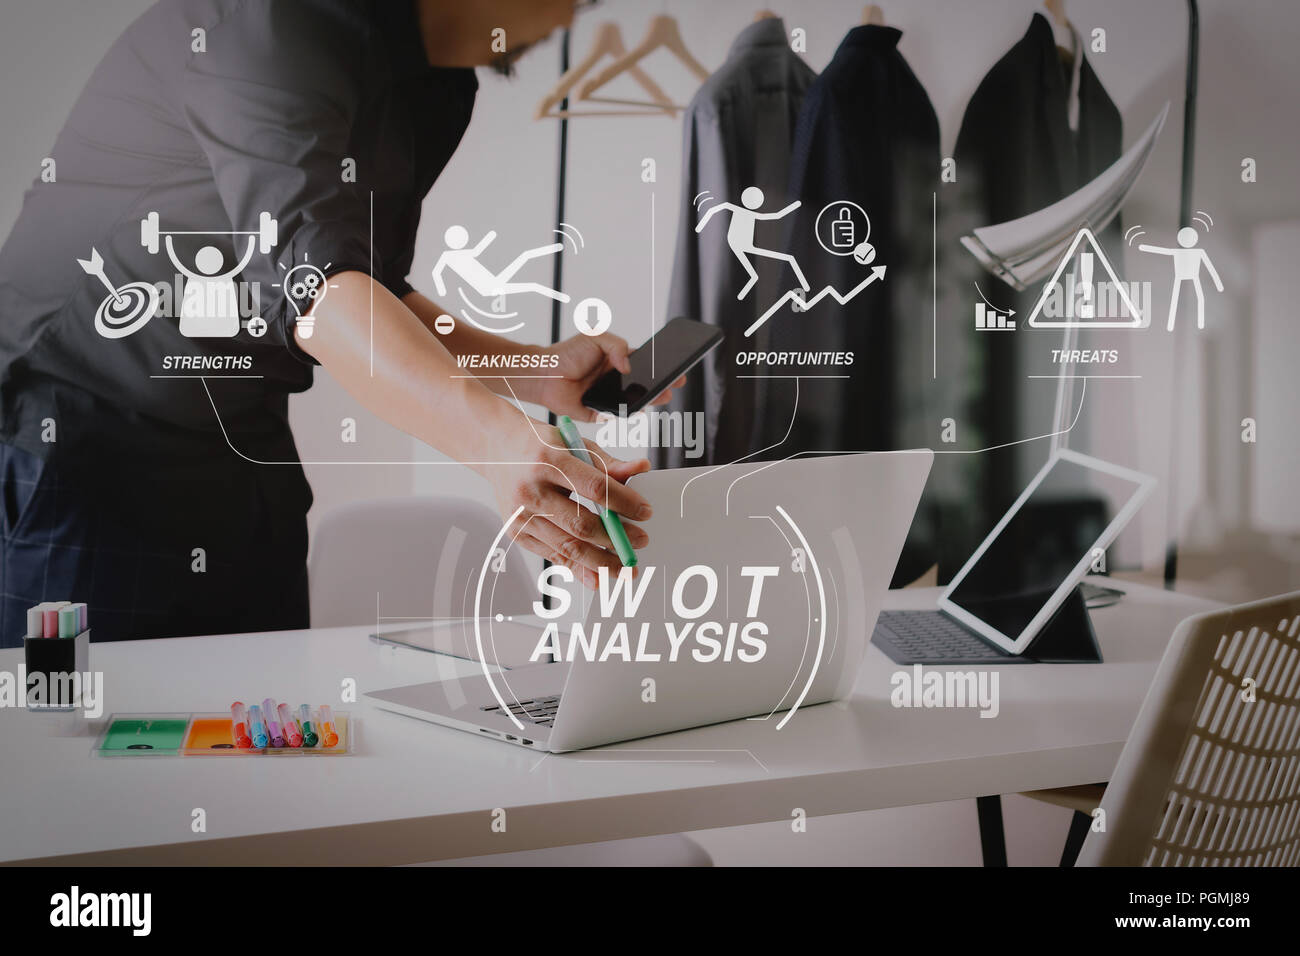 Swot Analysis Virtual Diagram With Strengths Weaknesses Threats And Opportunities Of Company Fashion Designer Working With Mobile Phone And Using La Stock Photo Alamy